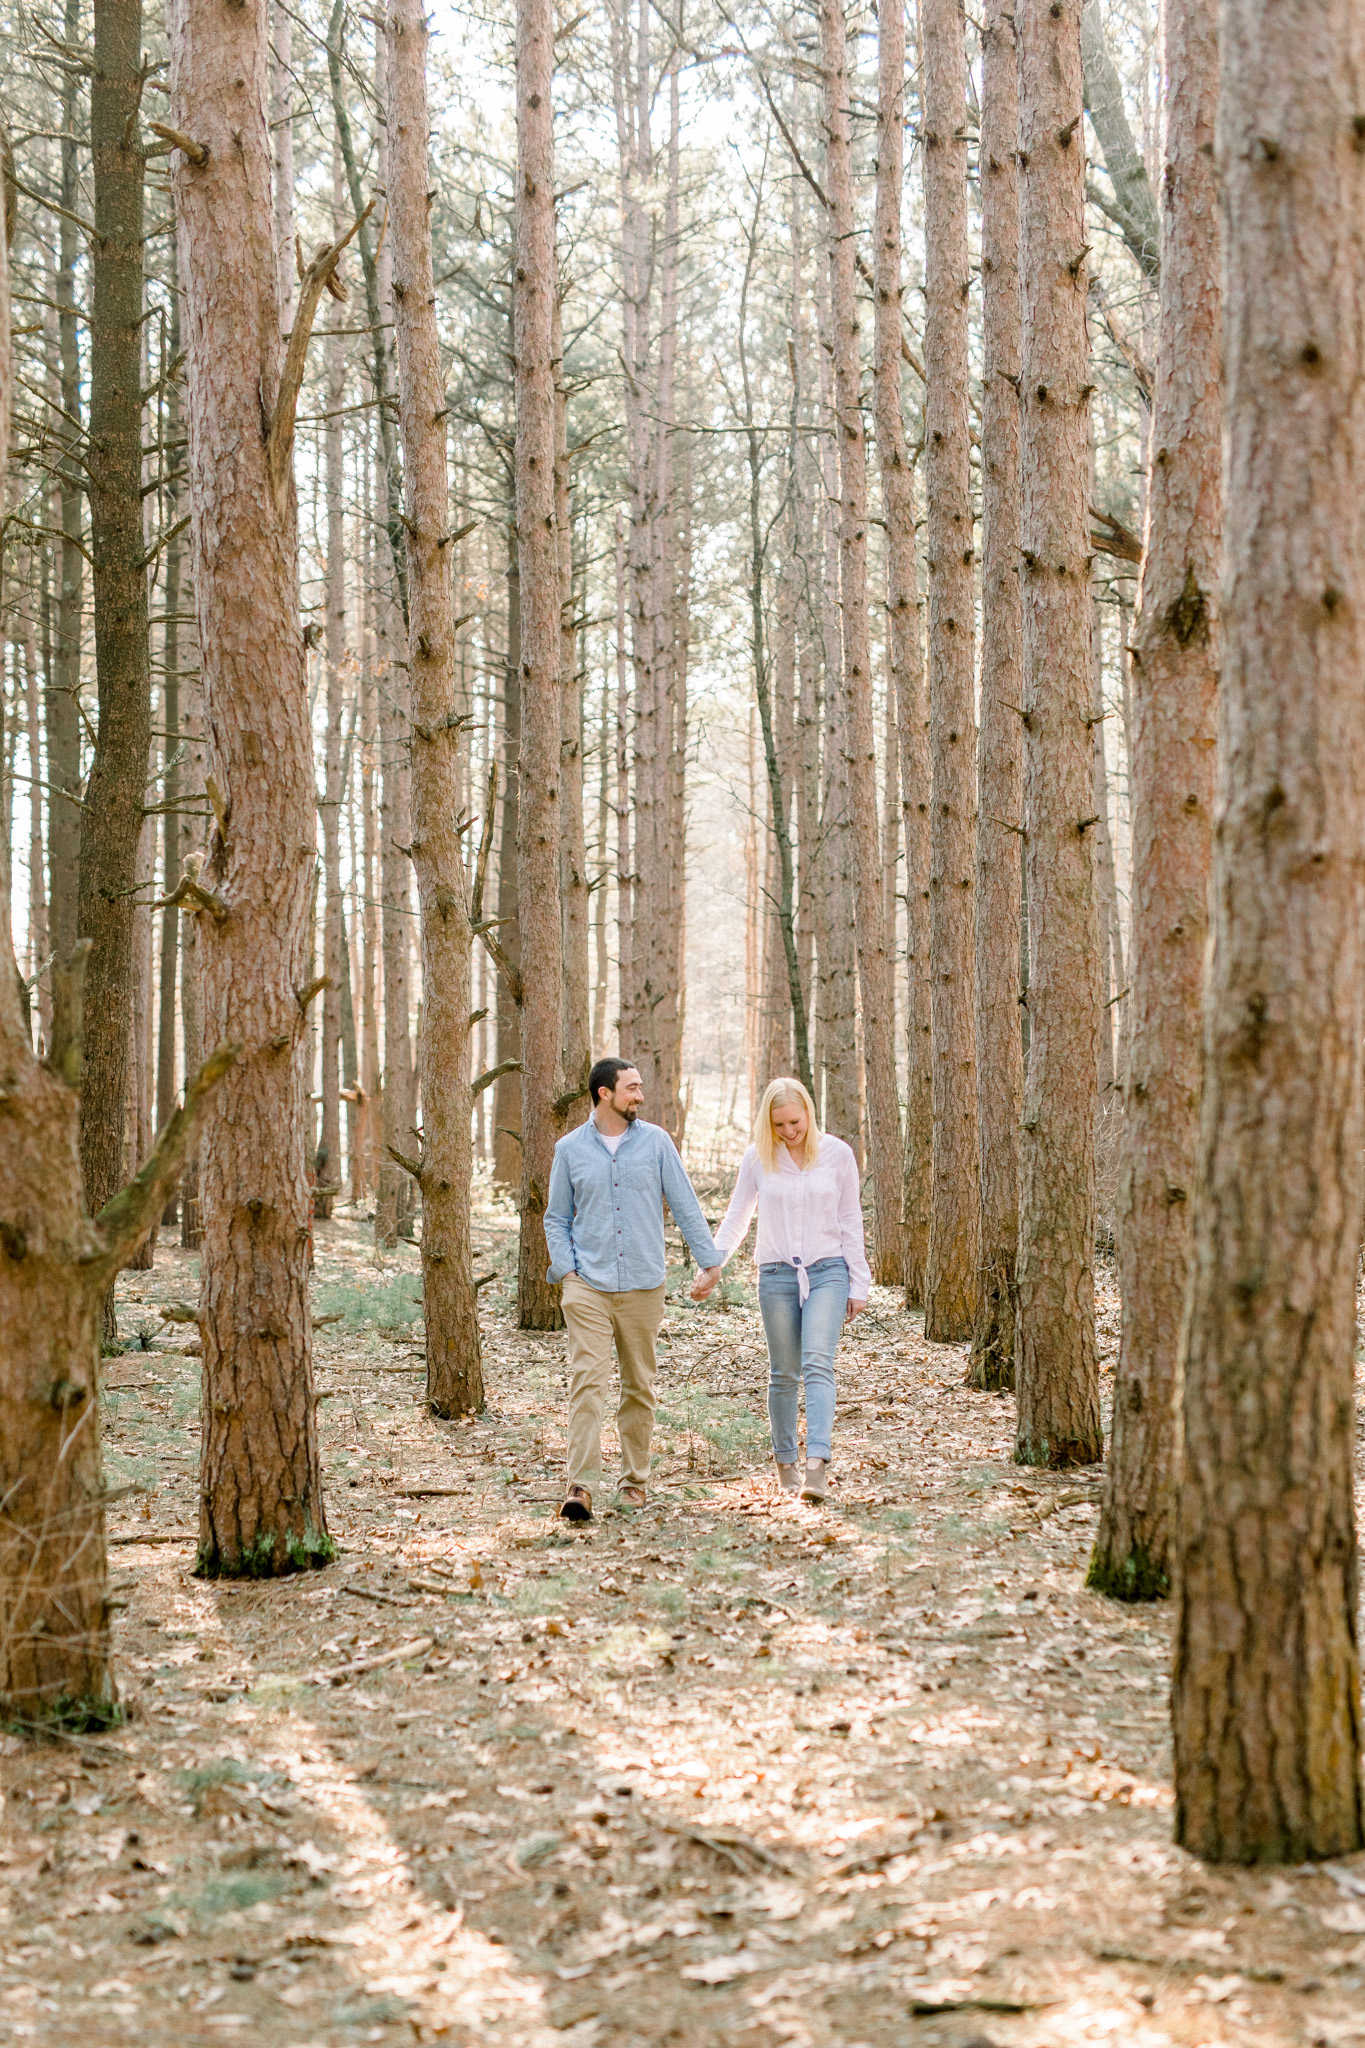 Light Filled Woodland Engagement Session | Light and Airy Photography | Film Inspired |  West Michigan Wedding Photographer